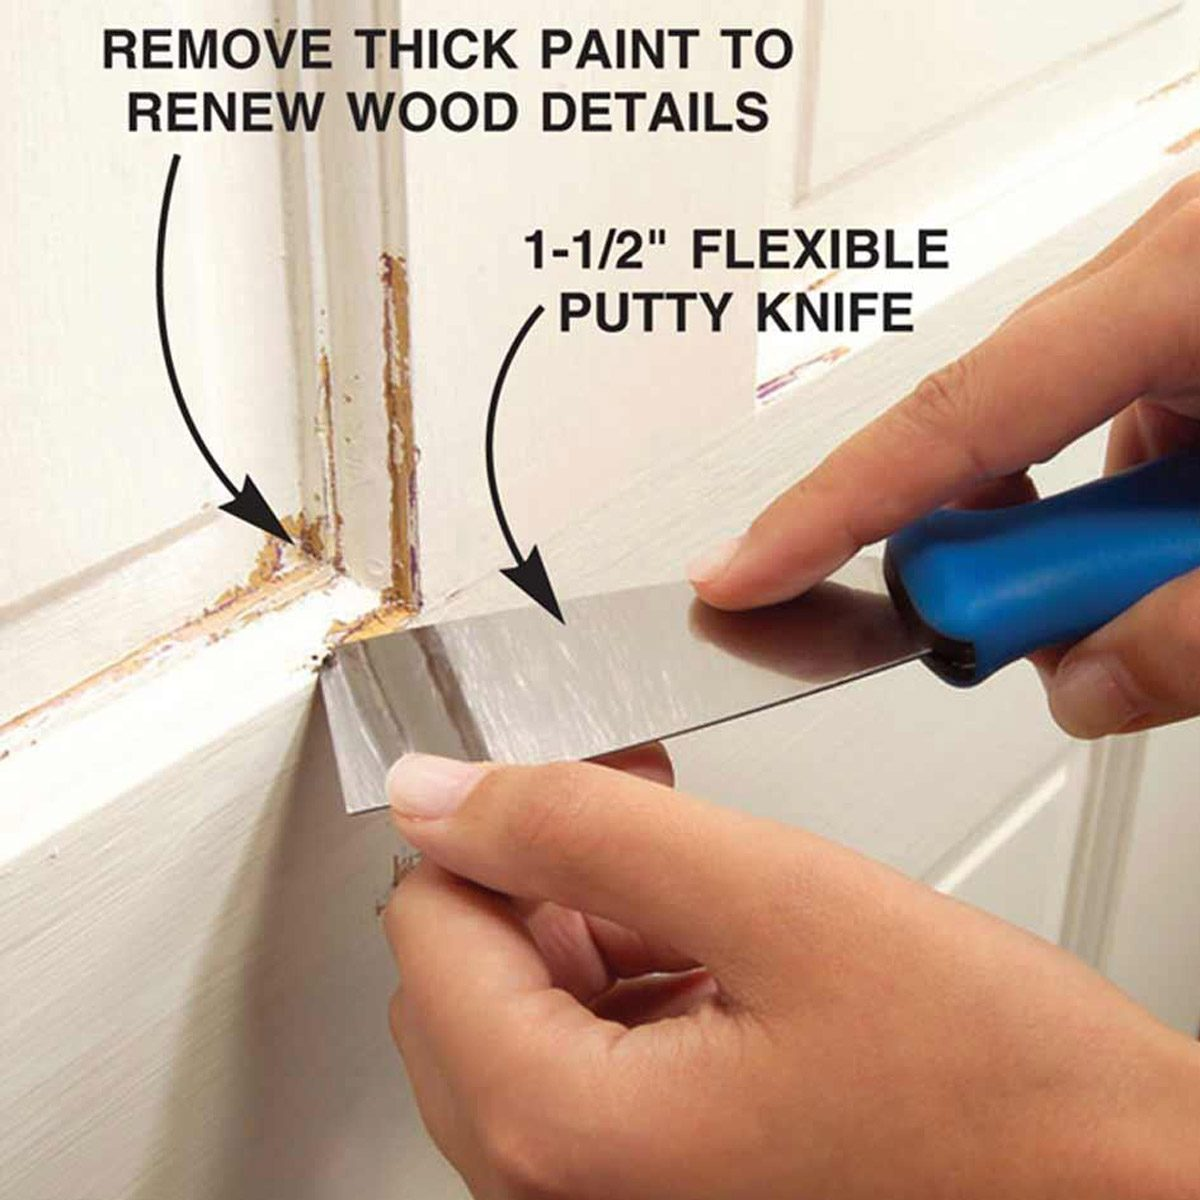 clean out corners with putty knife trim paint prep